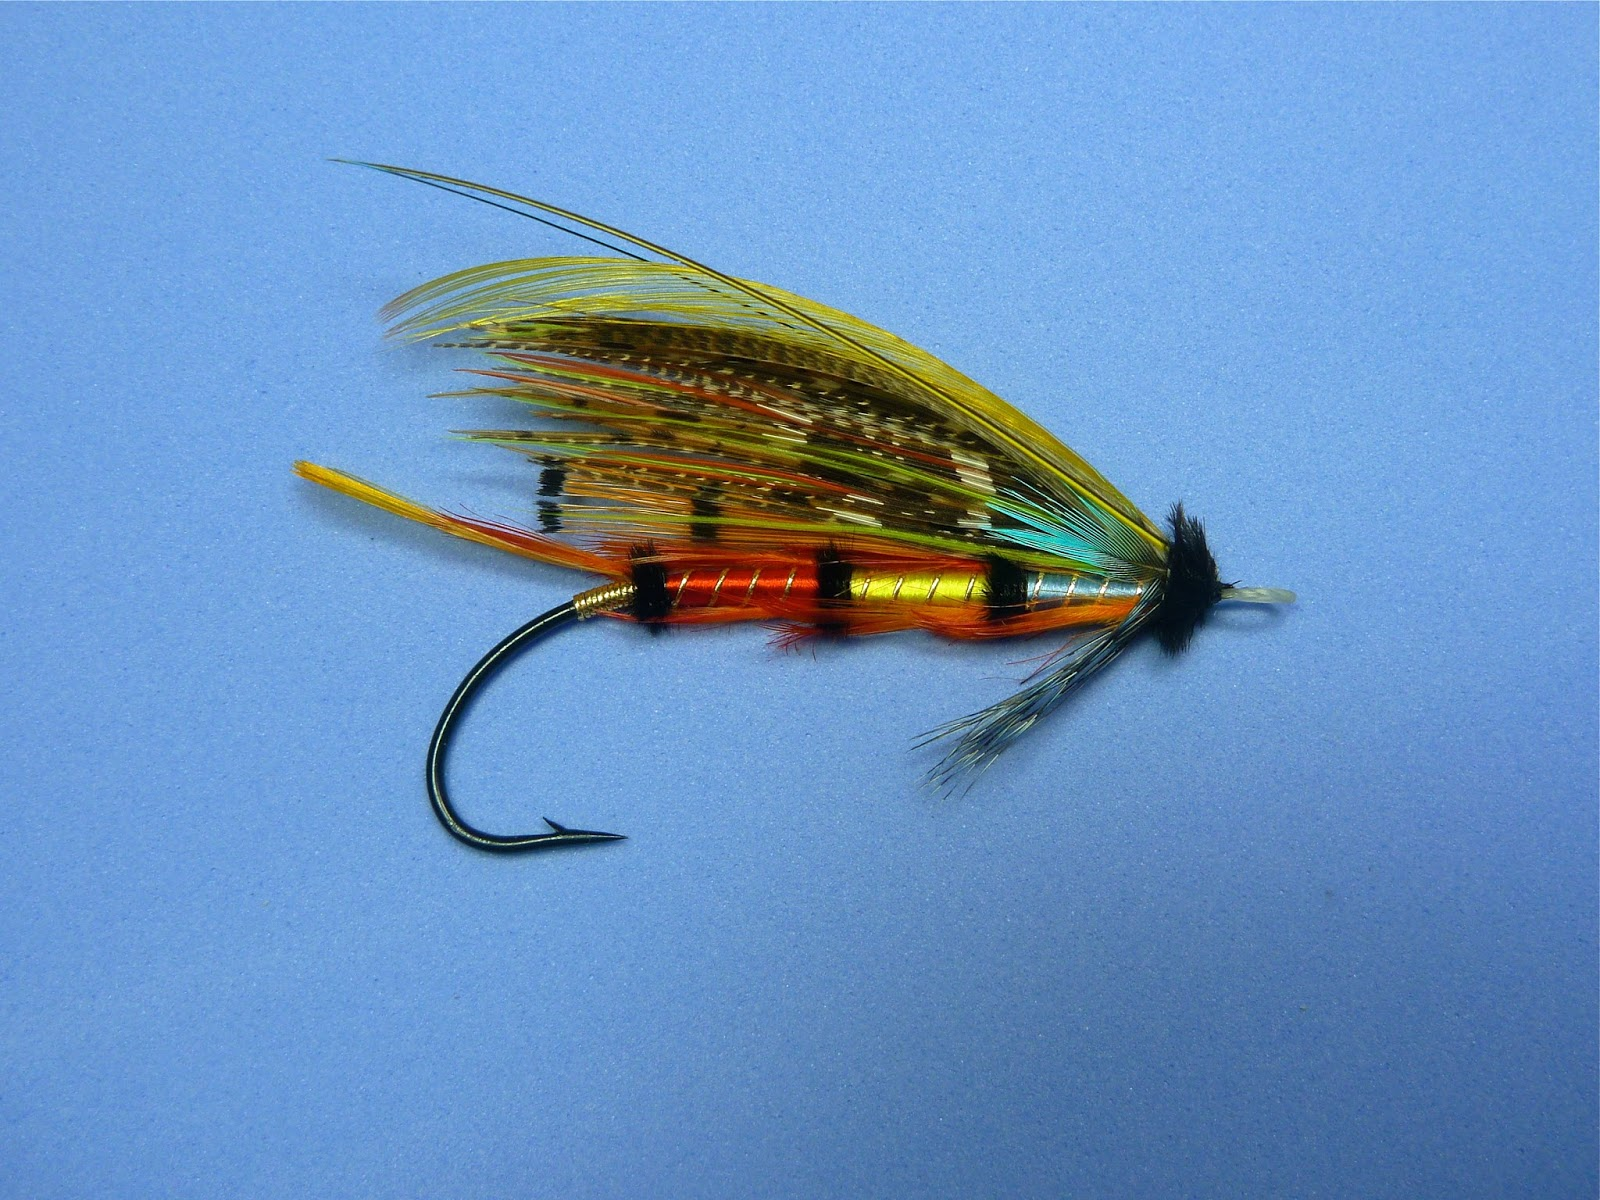 Atlantic Salmon Flies: The Popham 3/0